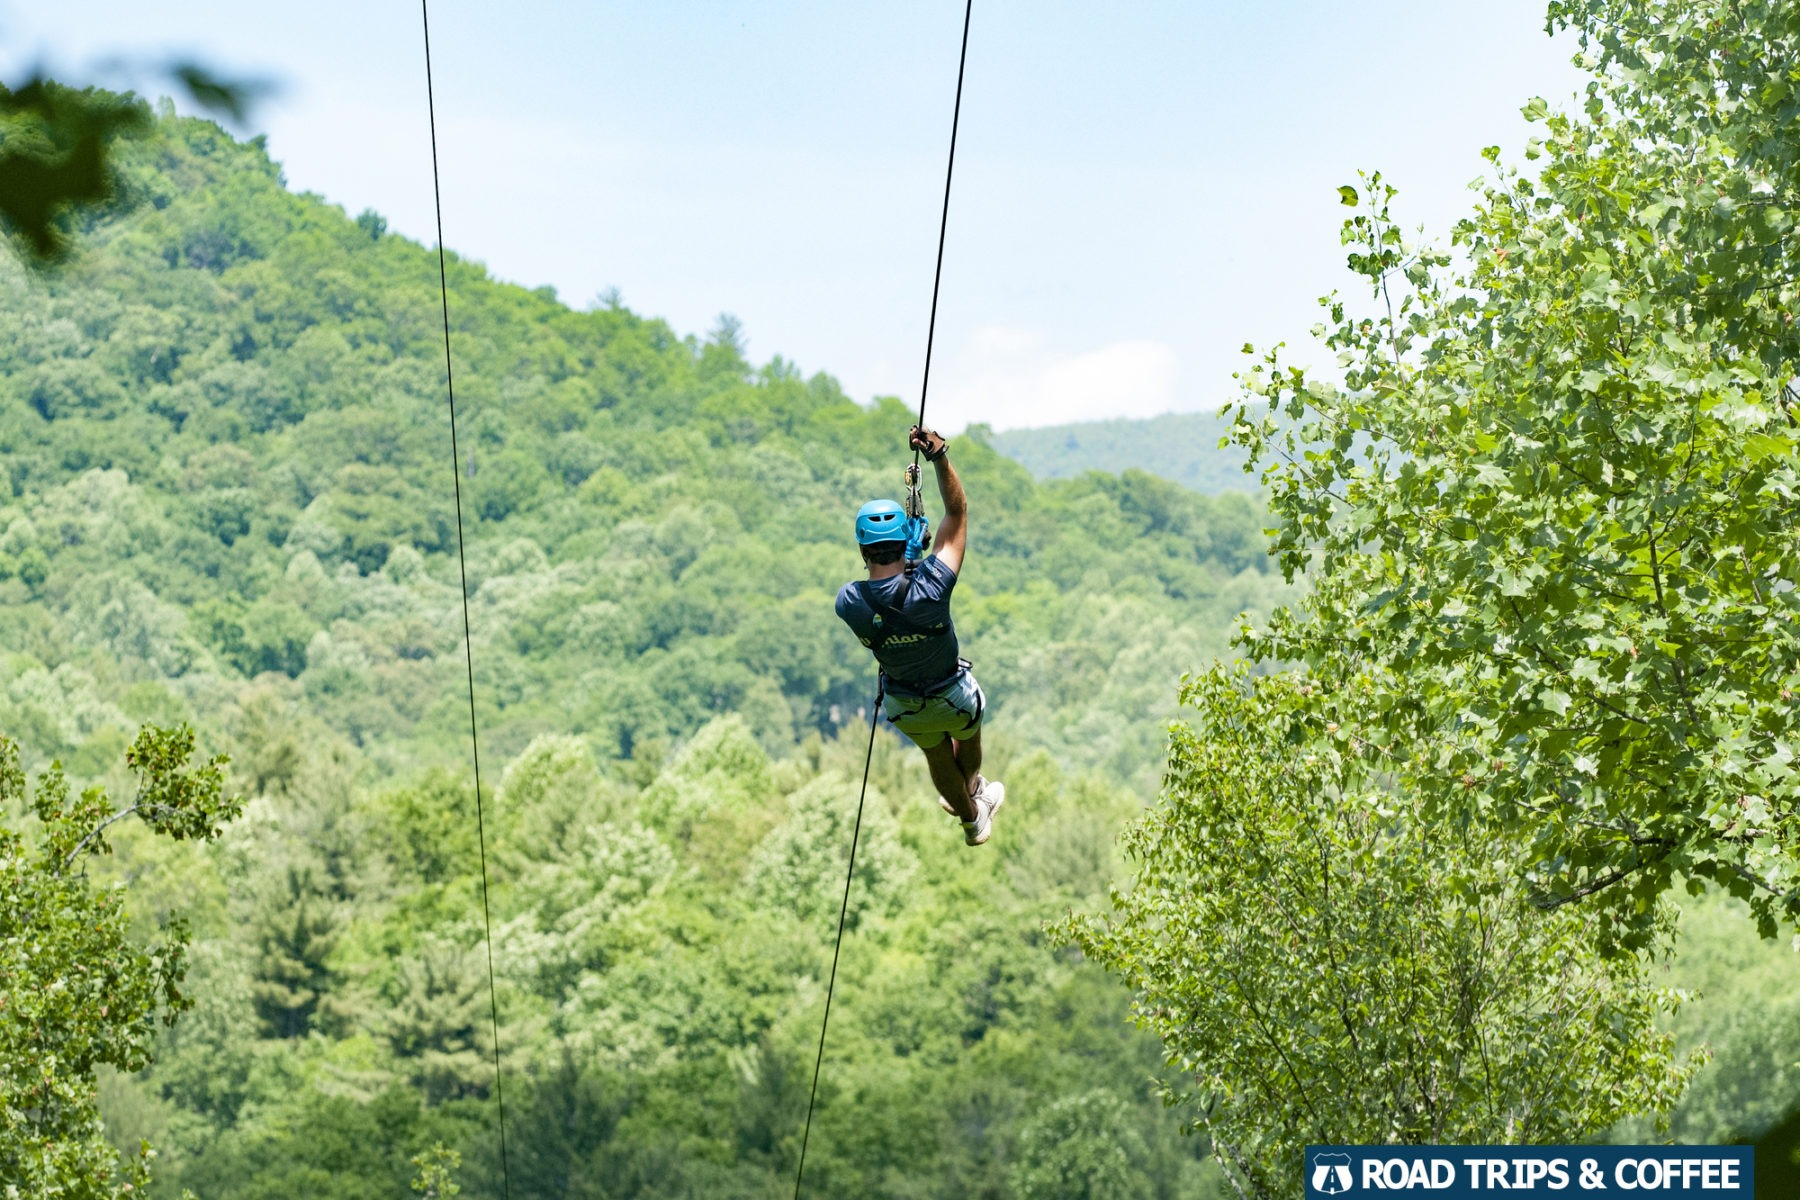 A lone person ziplines down a long line with views of the mountains in all directions at the Highlands Aerial Park in Highlands, North Carolina